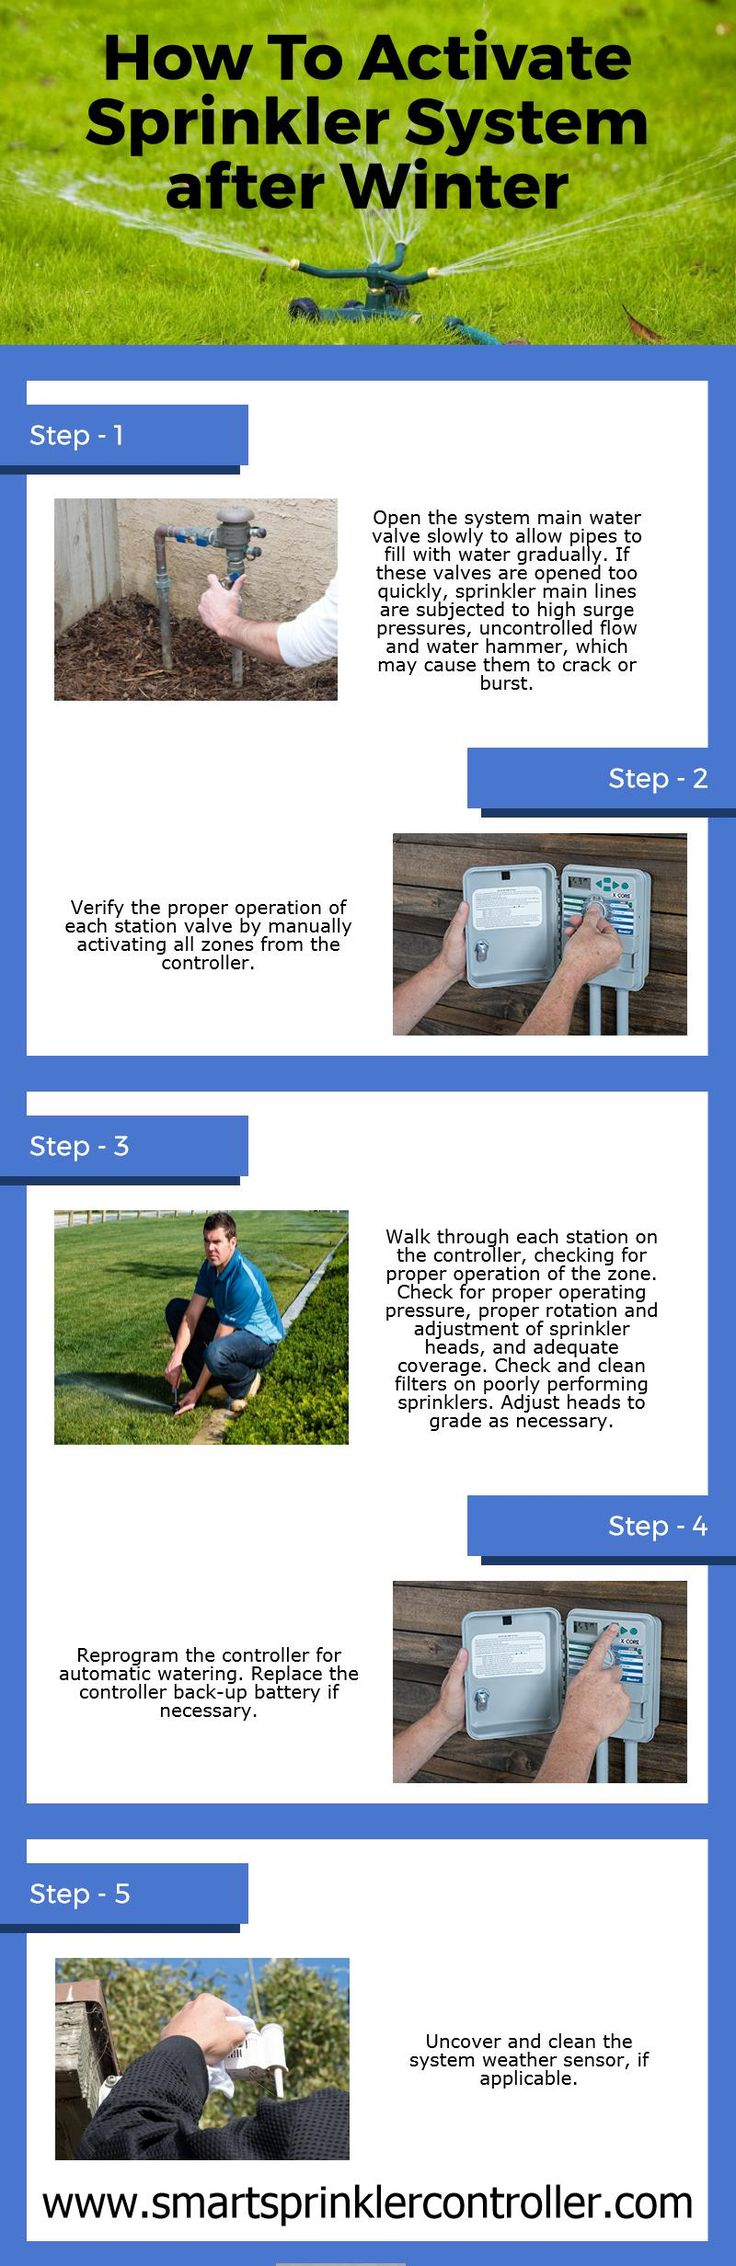 You all know winter season ends and spring emanates, then it's time to activate your #irrigationsystems and start watering again. In this infographic, I have listed five step for starting your garden #sprinklersystem after winter. https://www.smartsprinklercontroller.com/how-to-turn-on-sprinkler-system-spring/